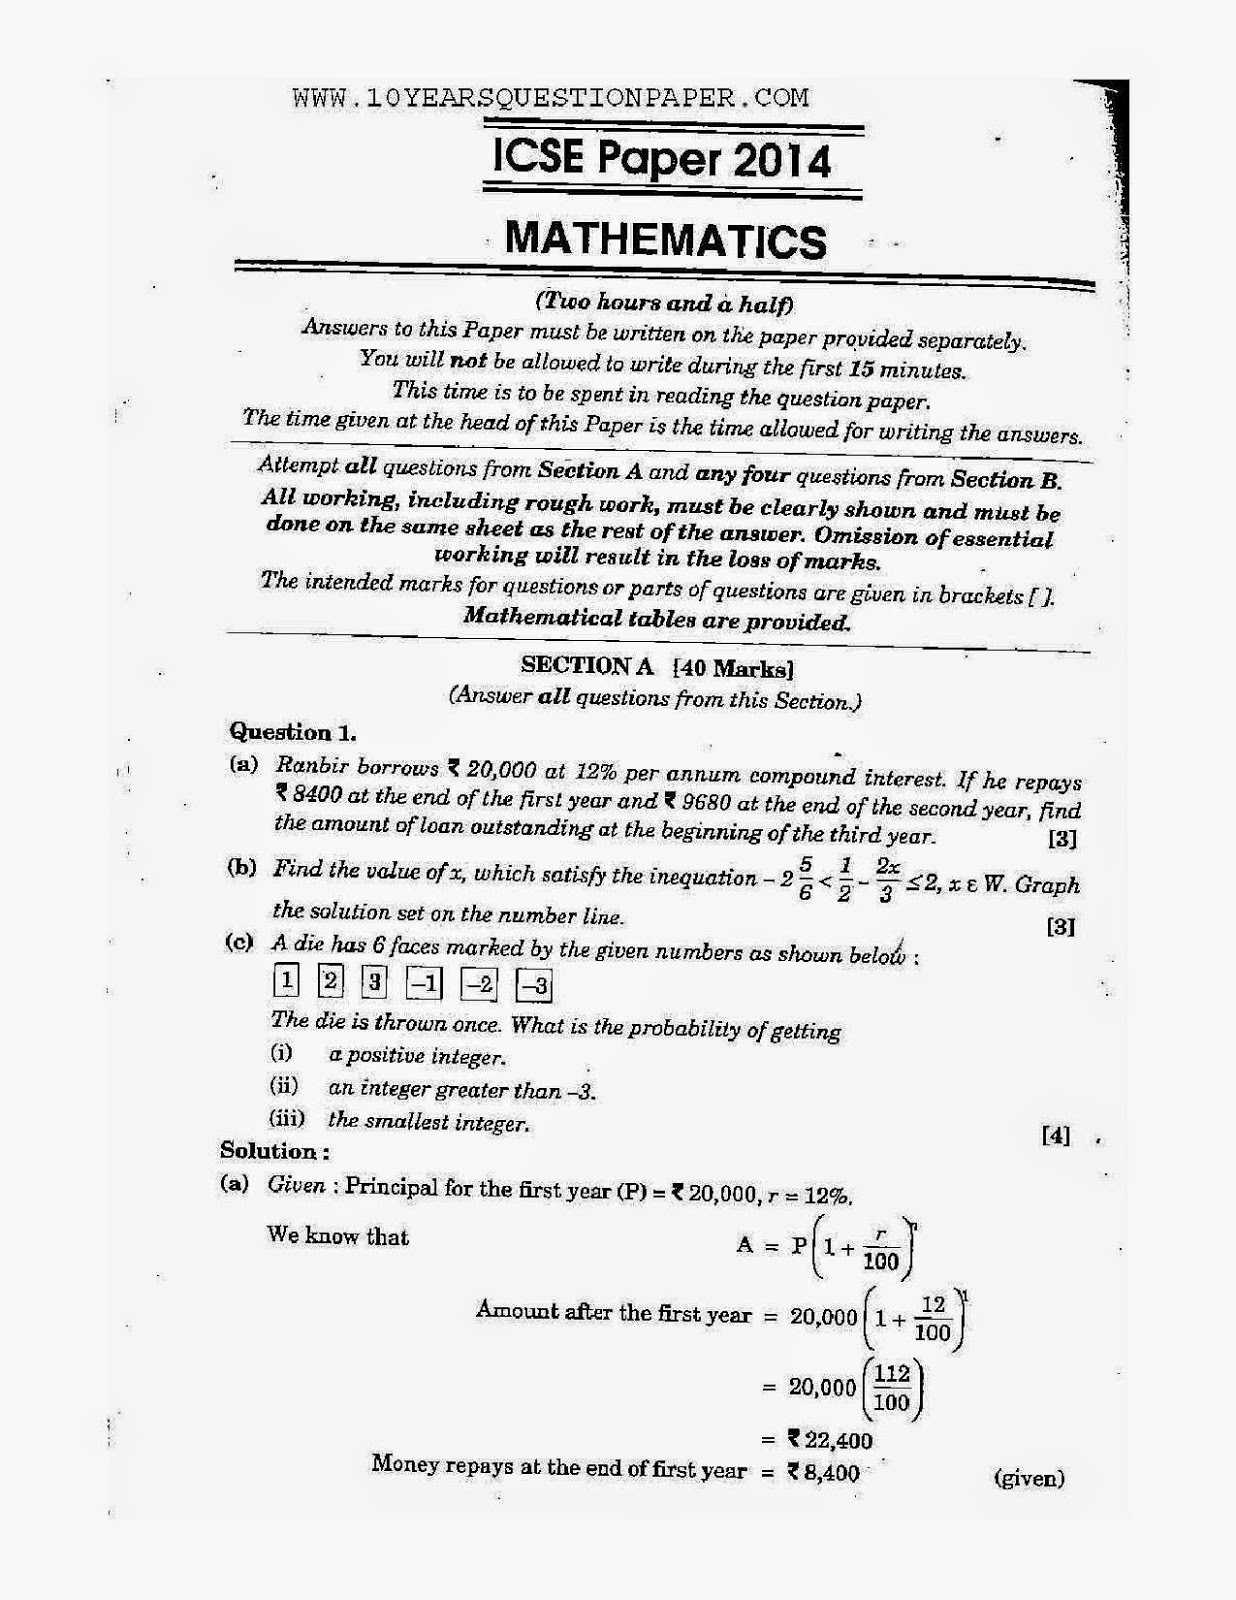 Icse maths 2014 solved question paper class 10 10 years question icse class 10th mathematics solved question paper 2014 malvernweather Gallery